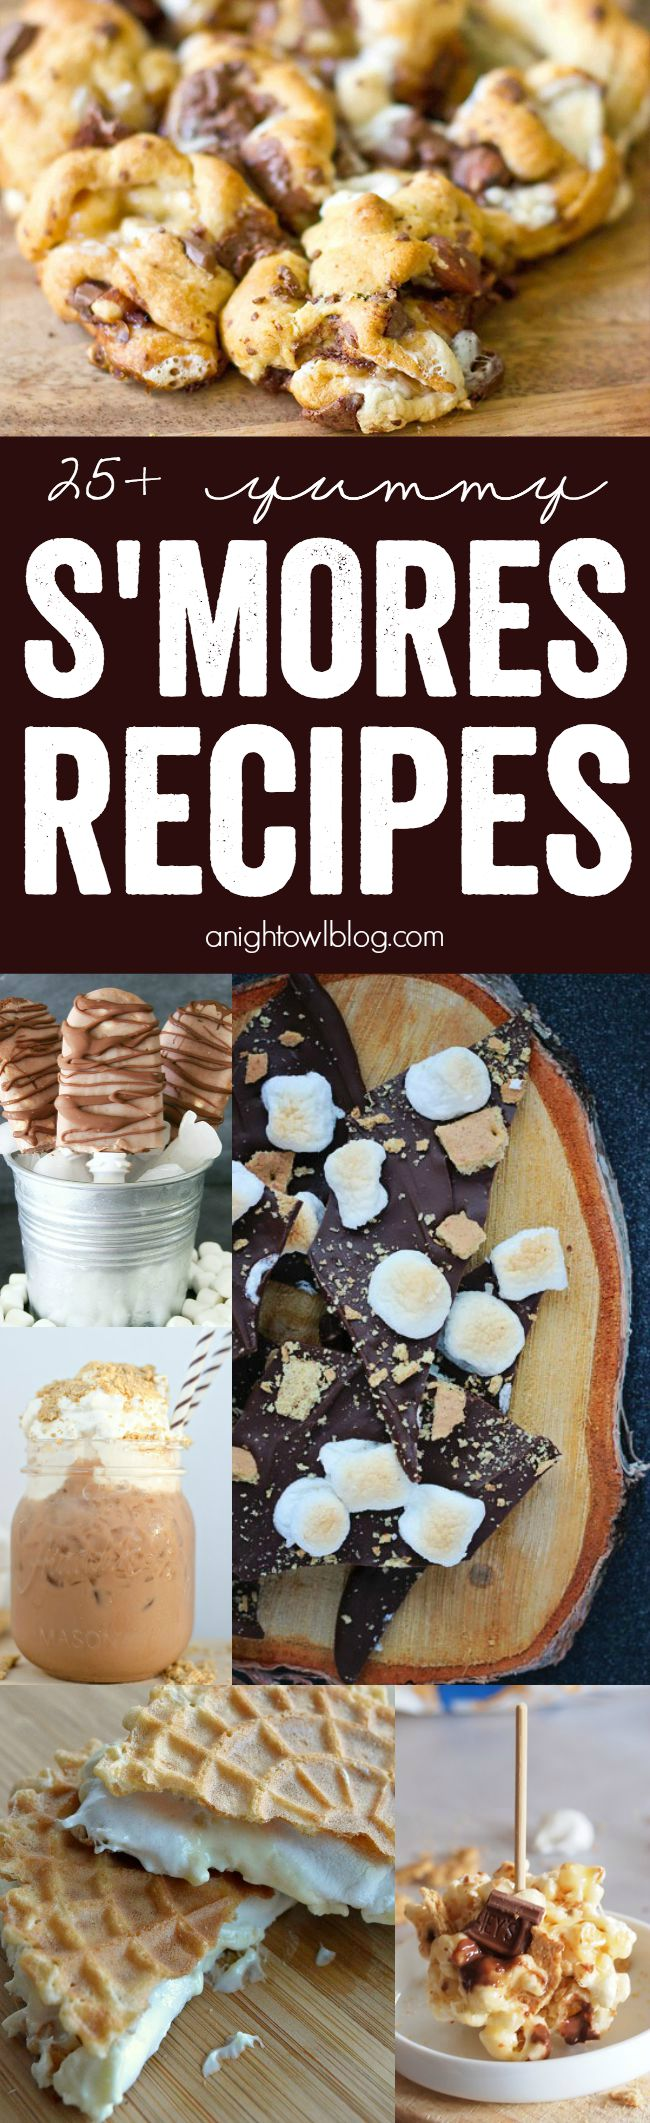 More than 25 DELICIOUS S'mores Recipes just in time for National S'mores Day! It's always a good day for a s'more! YUM!